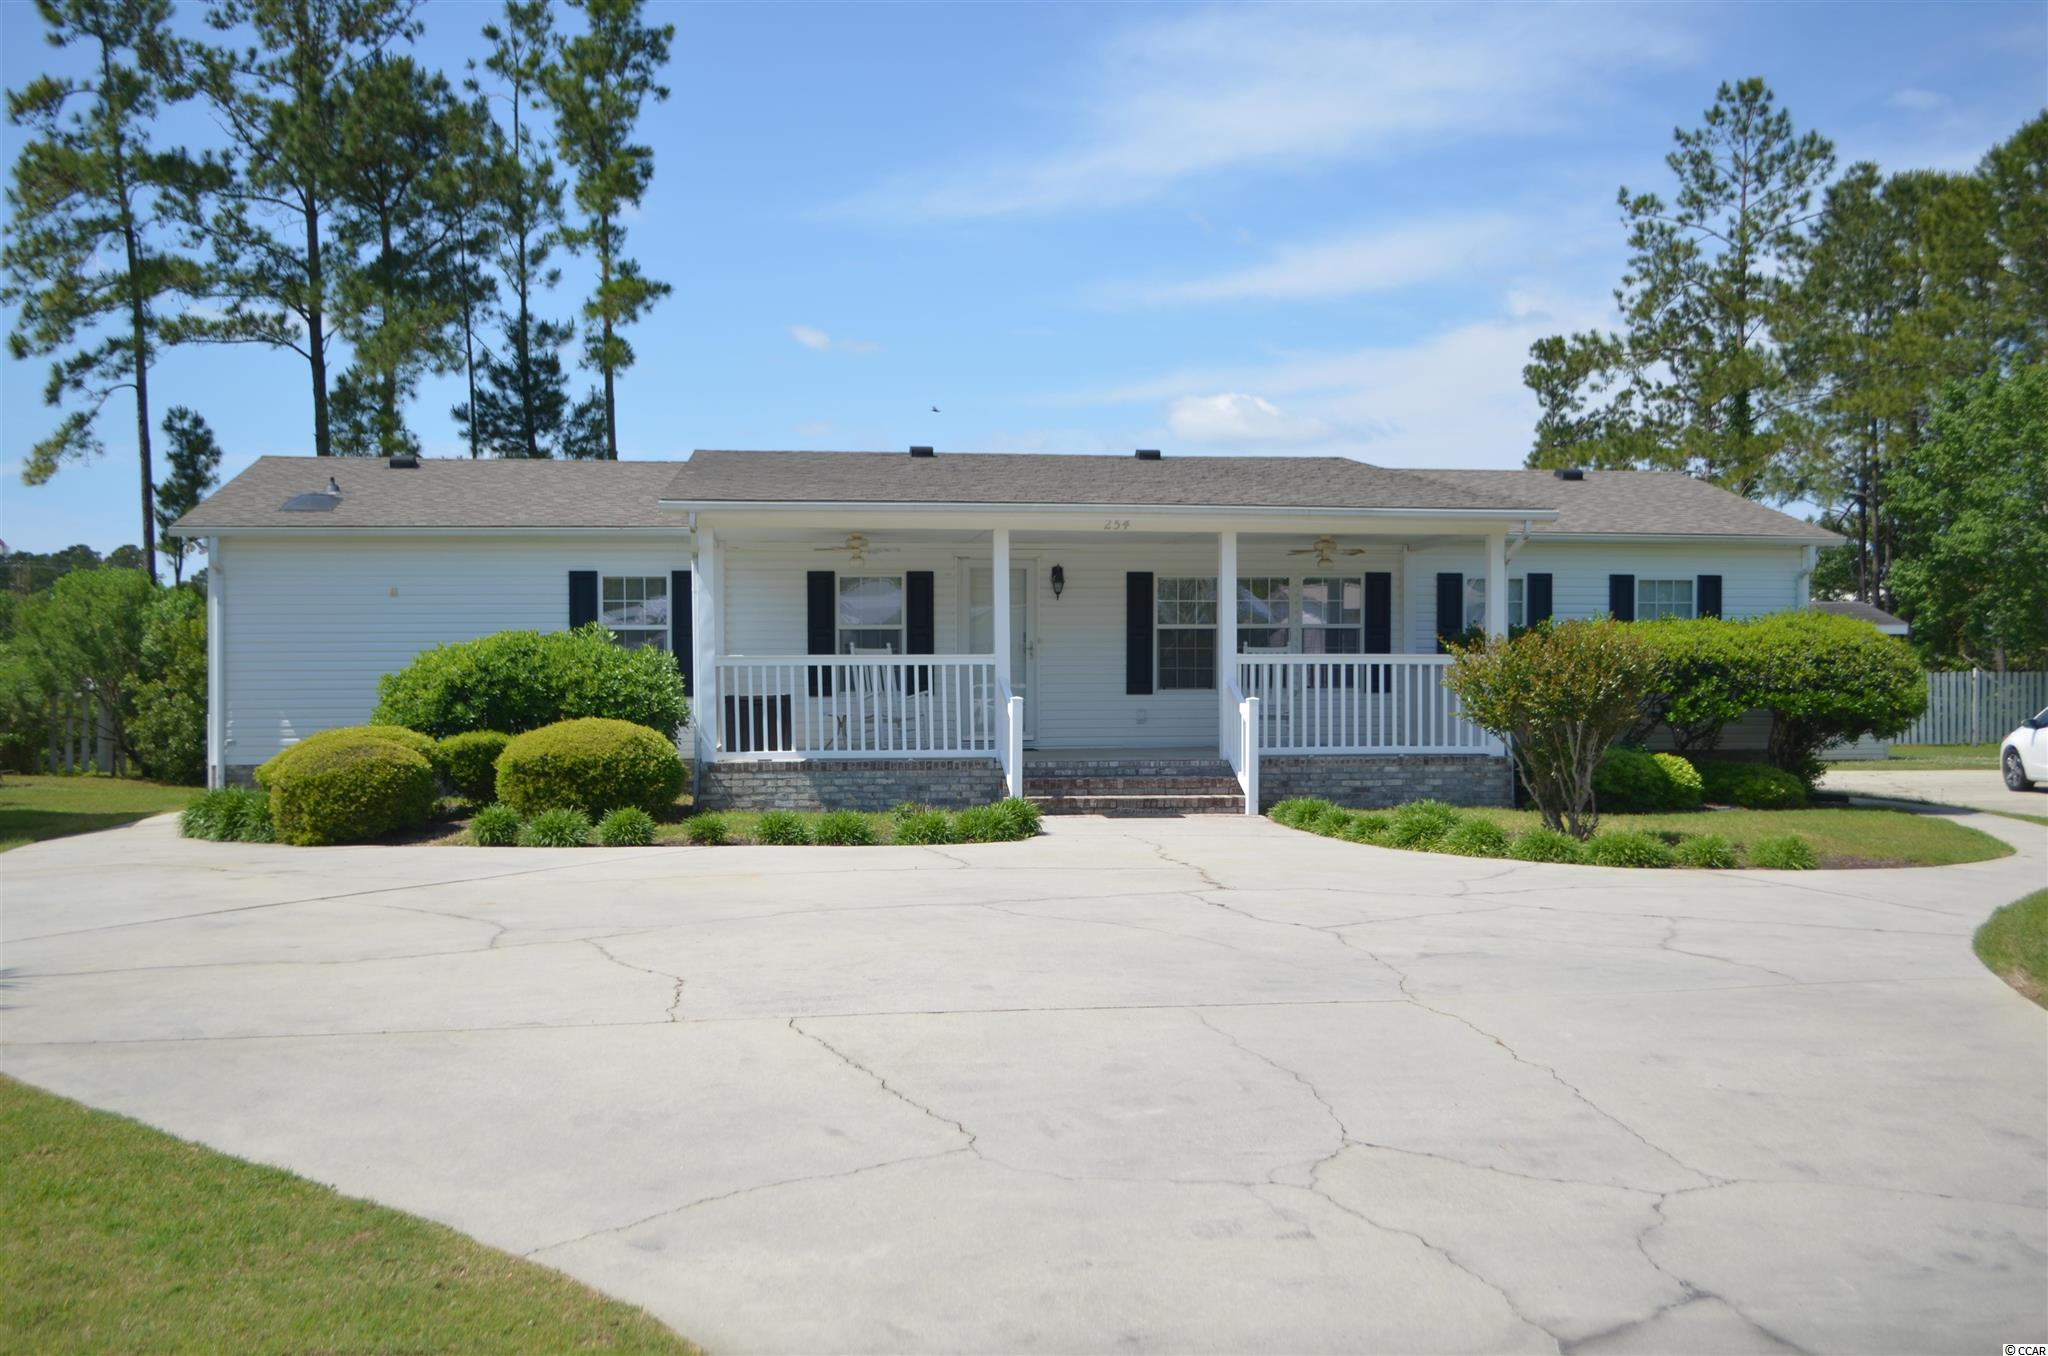 Welcome to this Beautiful and Spacious 3 Bedroom 2 Bath Home in Little River.  The home features a Large Living Room and Family Room with Fireplace.  The Master Bedroom is perfect size for a King Size Bed, and has an attached Office/Nursery or can be used as a Sitting Room.  The Split Bedroom Plan features two large guest rooms as well.  Enjoy relaxing under the covered porch out front or on the Back Porch with a Retractable Awning.  Two Storage buildings on property perfect to house Lawn Equipment and for overflow storage.  Low HOA and just 5-10 minutes to Shopping in North Myrtle Beach and the Atlantic Ocean. Come see this today